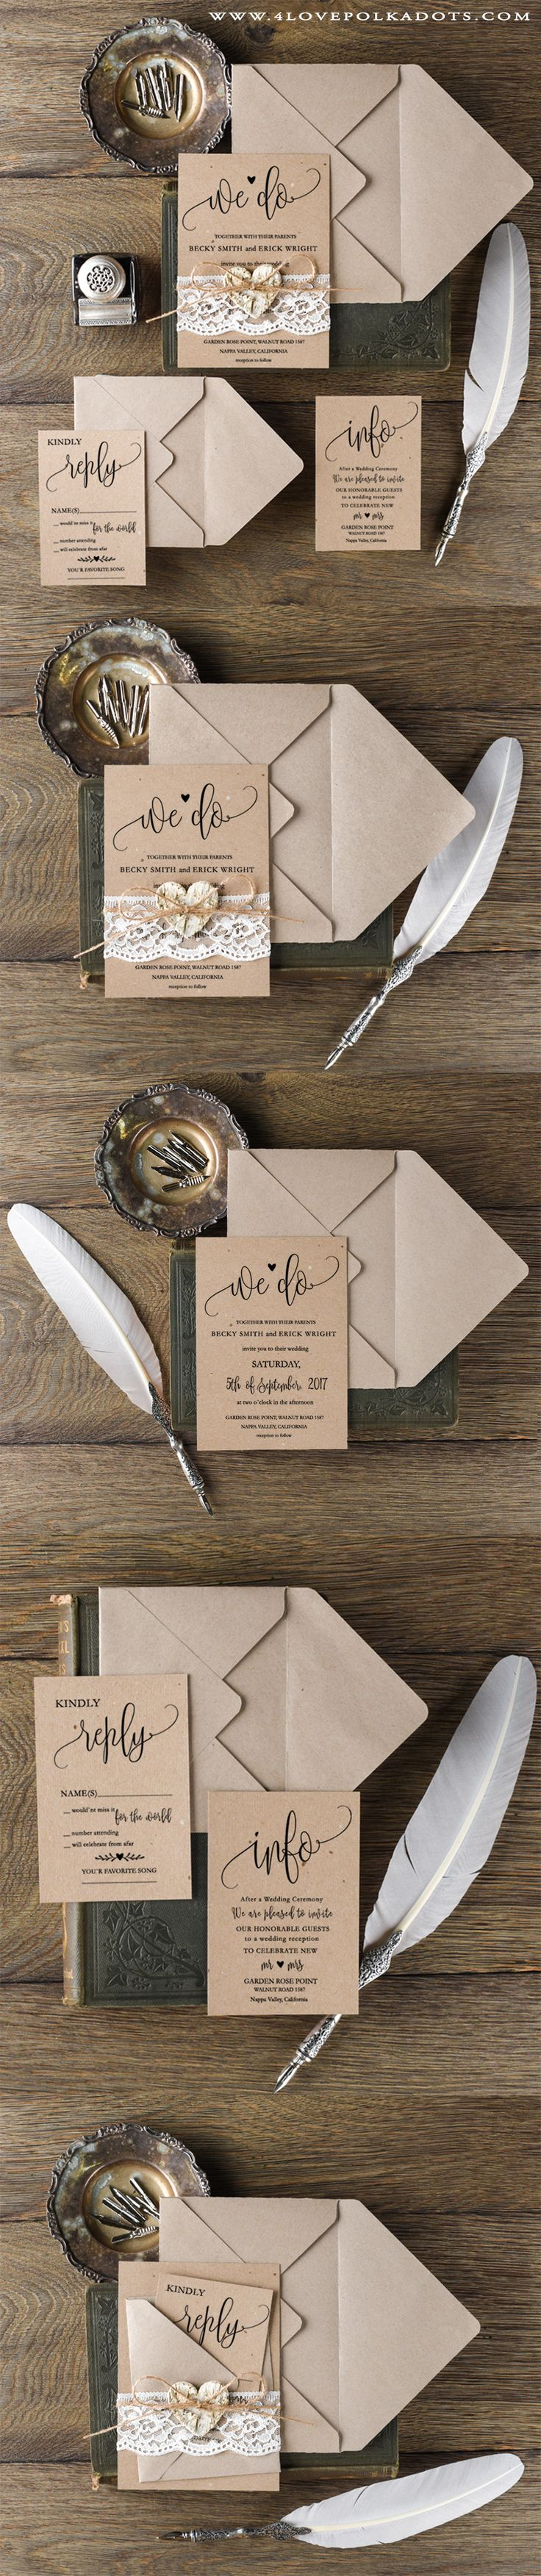 Capture Homemade Wedding Invitations